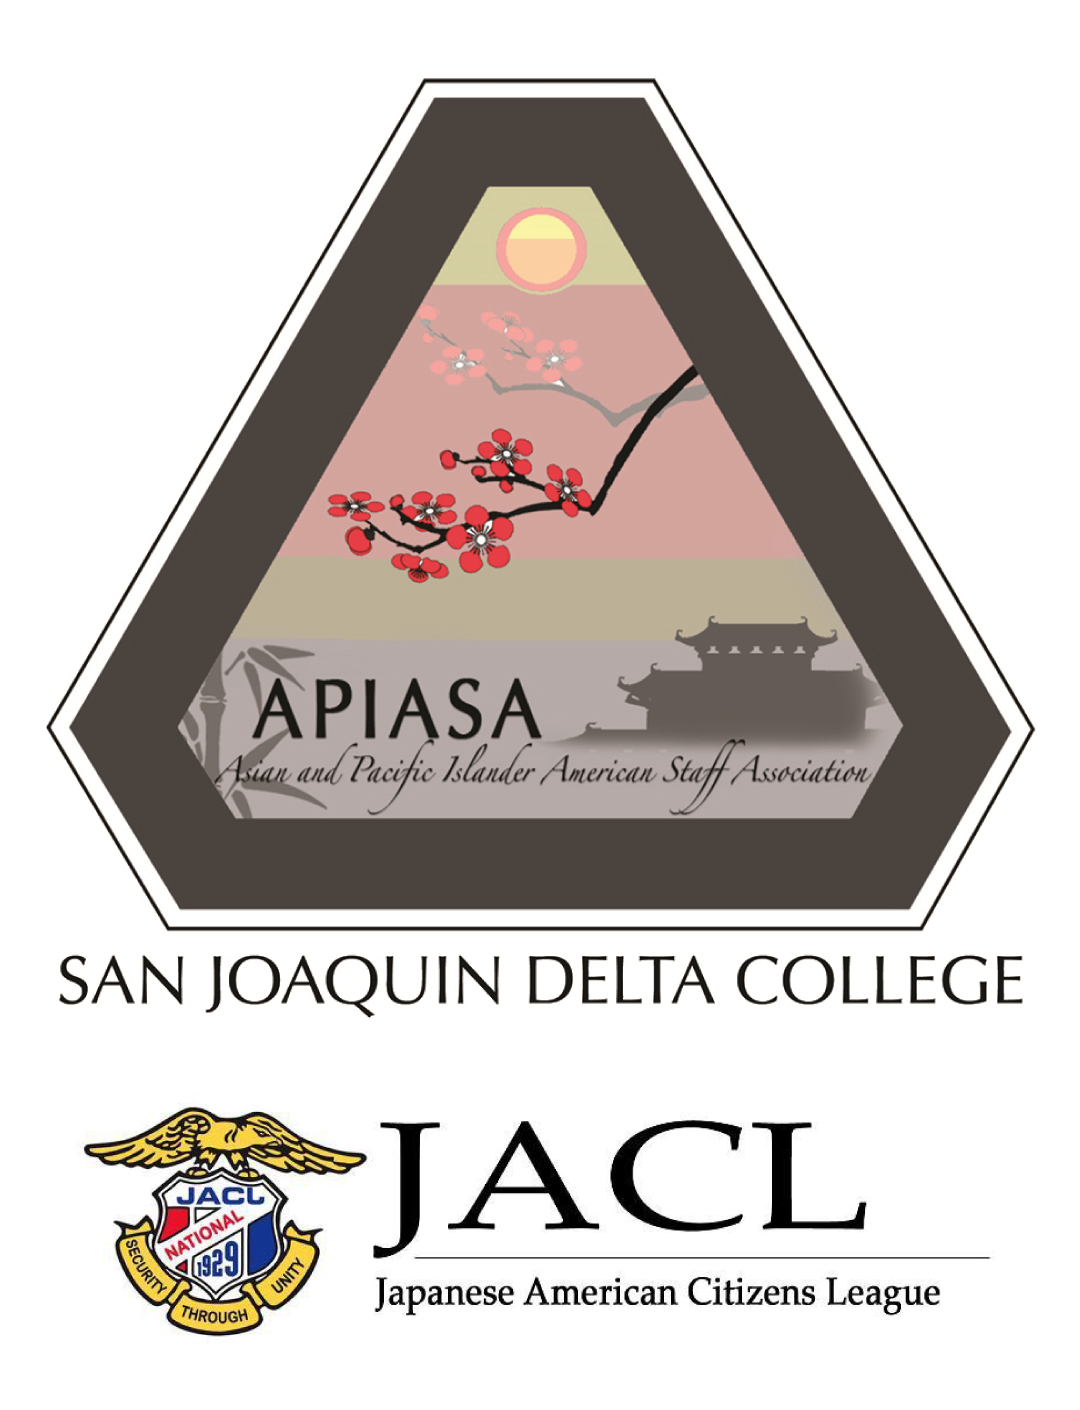 - SCREENING DATE / TIME:Saturday, March 17, 2018 / 1:00 p.m.LOCATION:Day of Remembrance, hosted by the Stockton JACL and the Asian Pacific Islander American Staff Association (APIASA) of San Joaquin Delta CollegeTillie Lewis TheaterSan Joaquin Delta College5151 Pacific AvenueStockton, CA 95207TICKETS:This is a free community screening event. For more information, please contact Aeko Yoshikawa at aeko@sbcglobal.net.